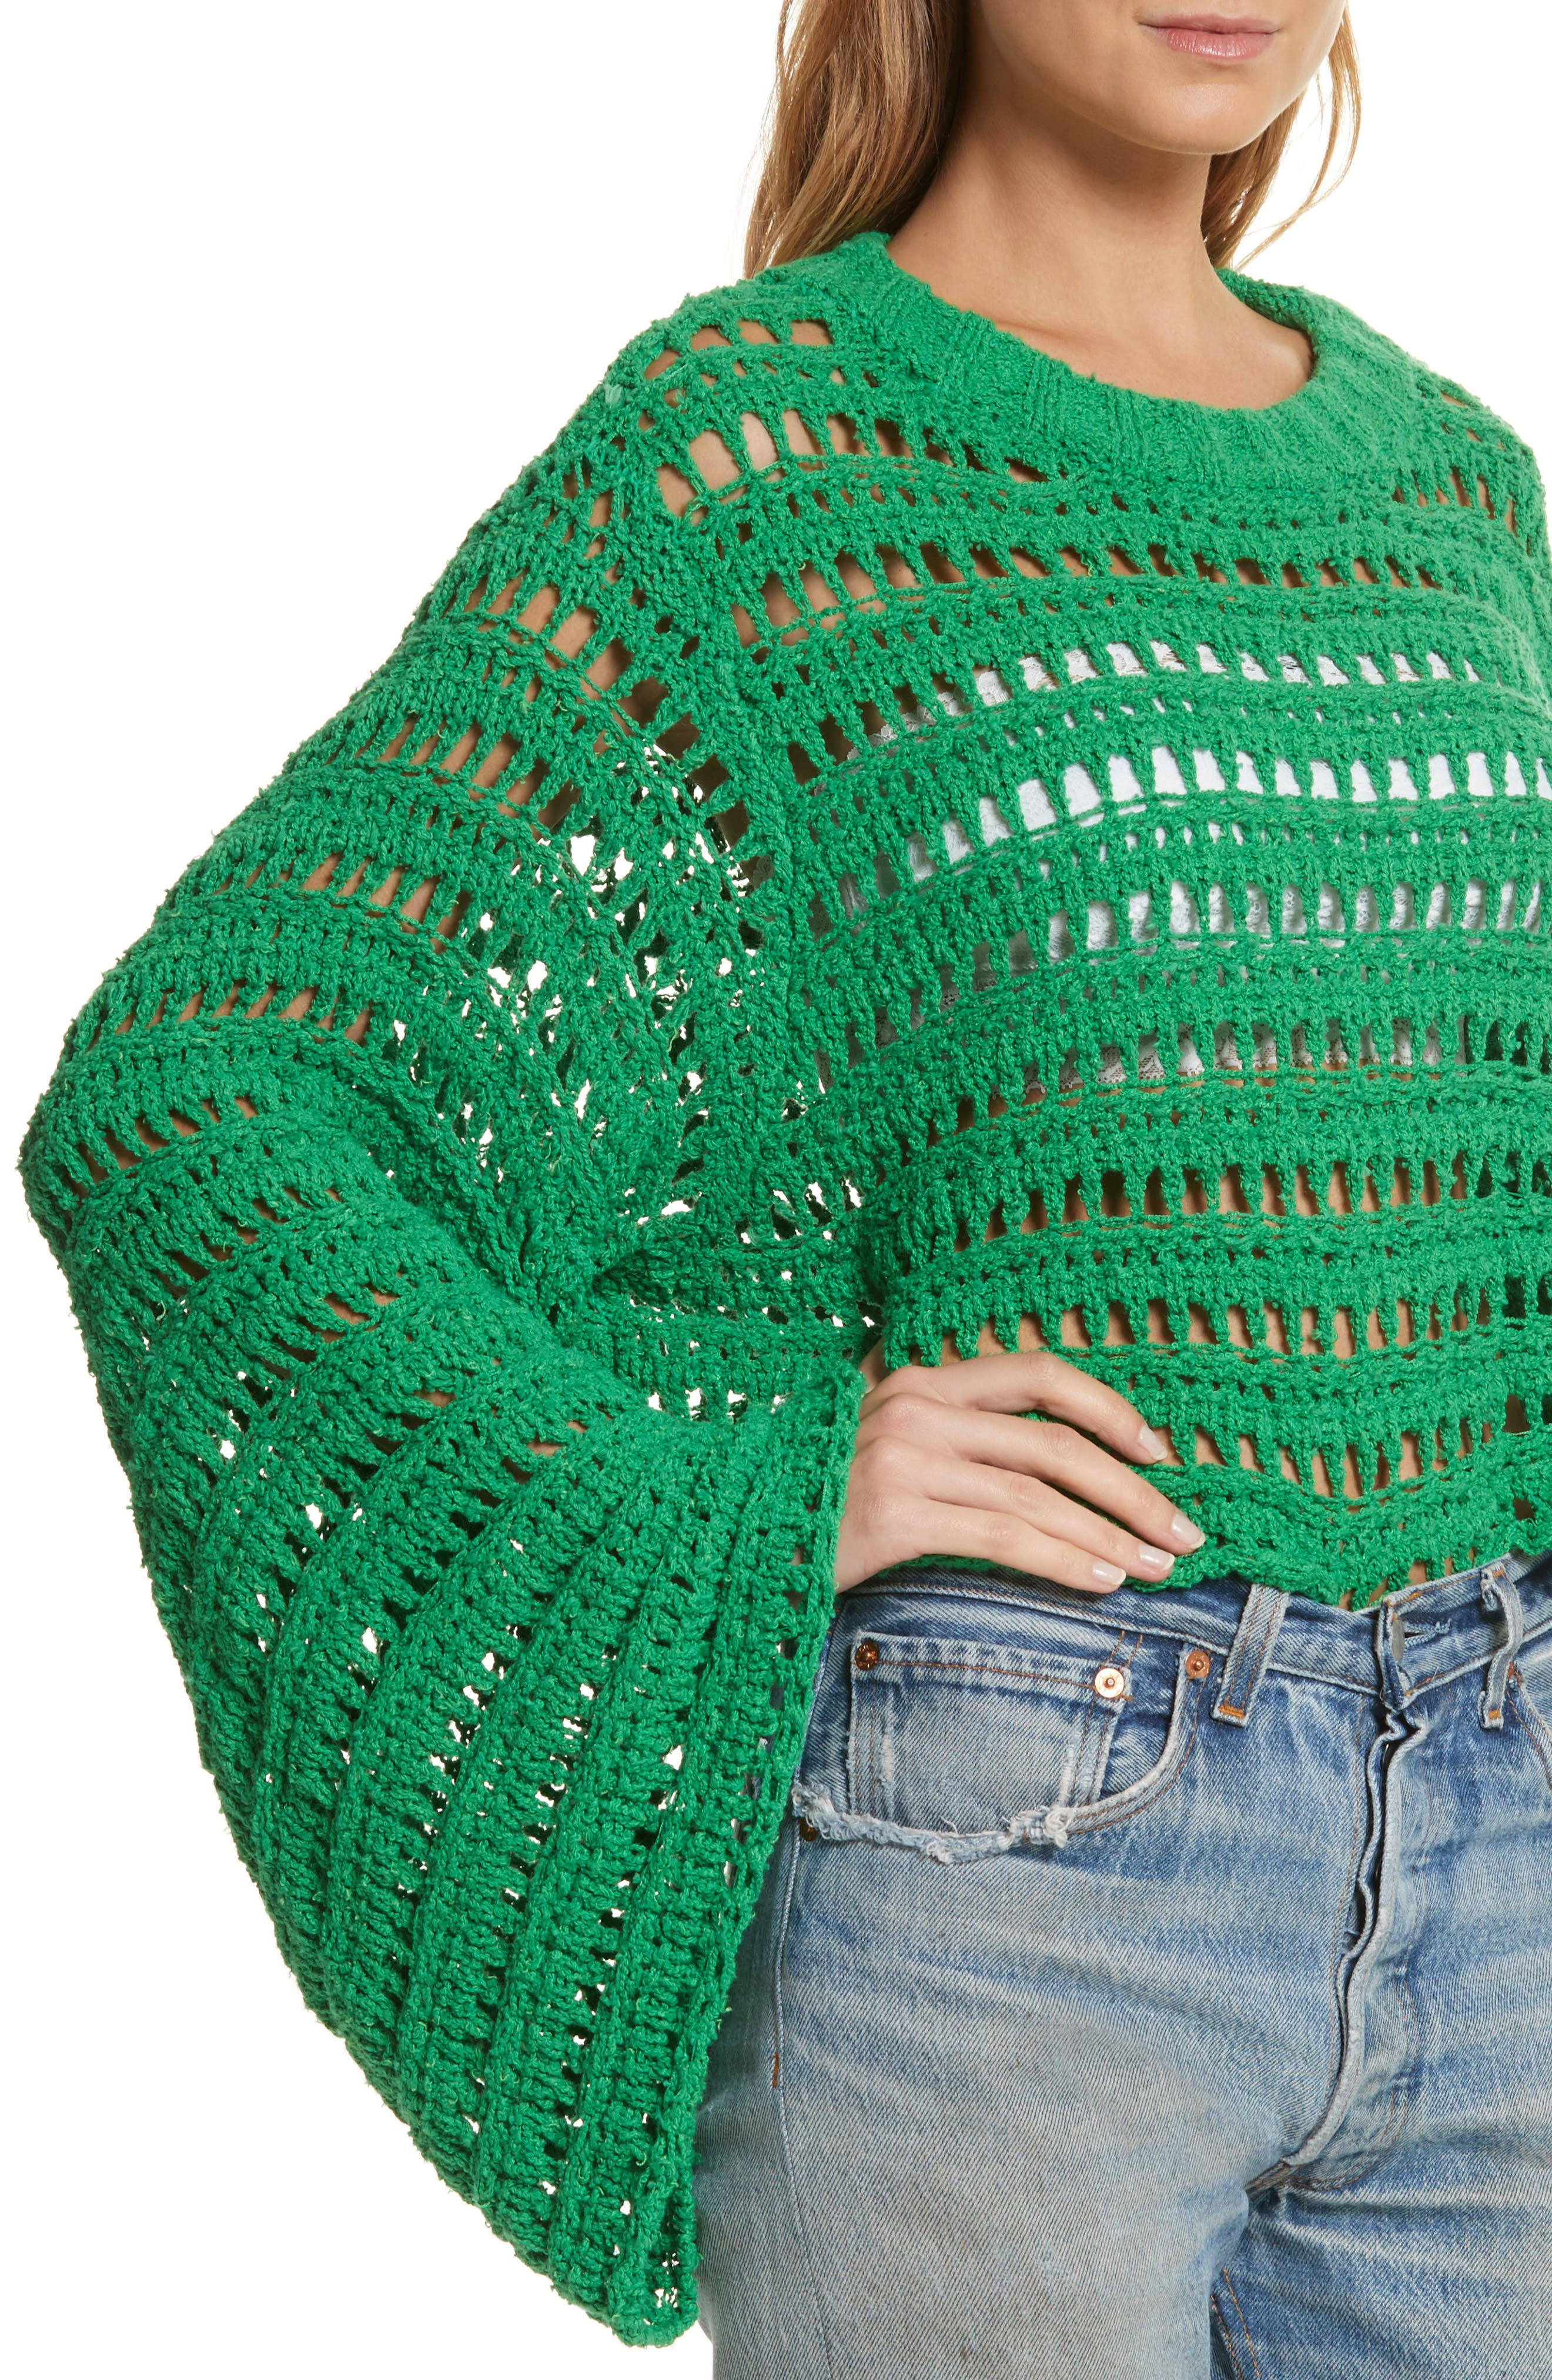 Caught Up Crochet Top,                             Alternate thumbnail 4, color,                             Kelly Green